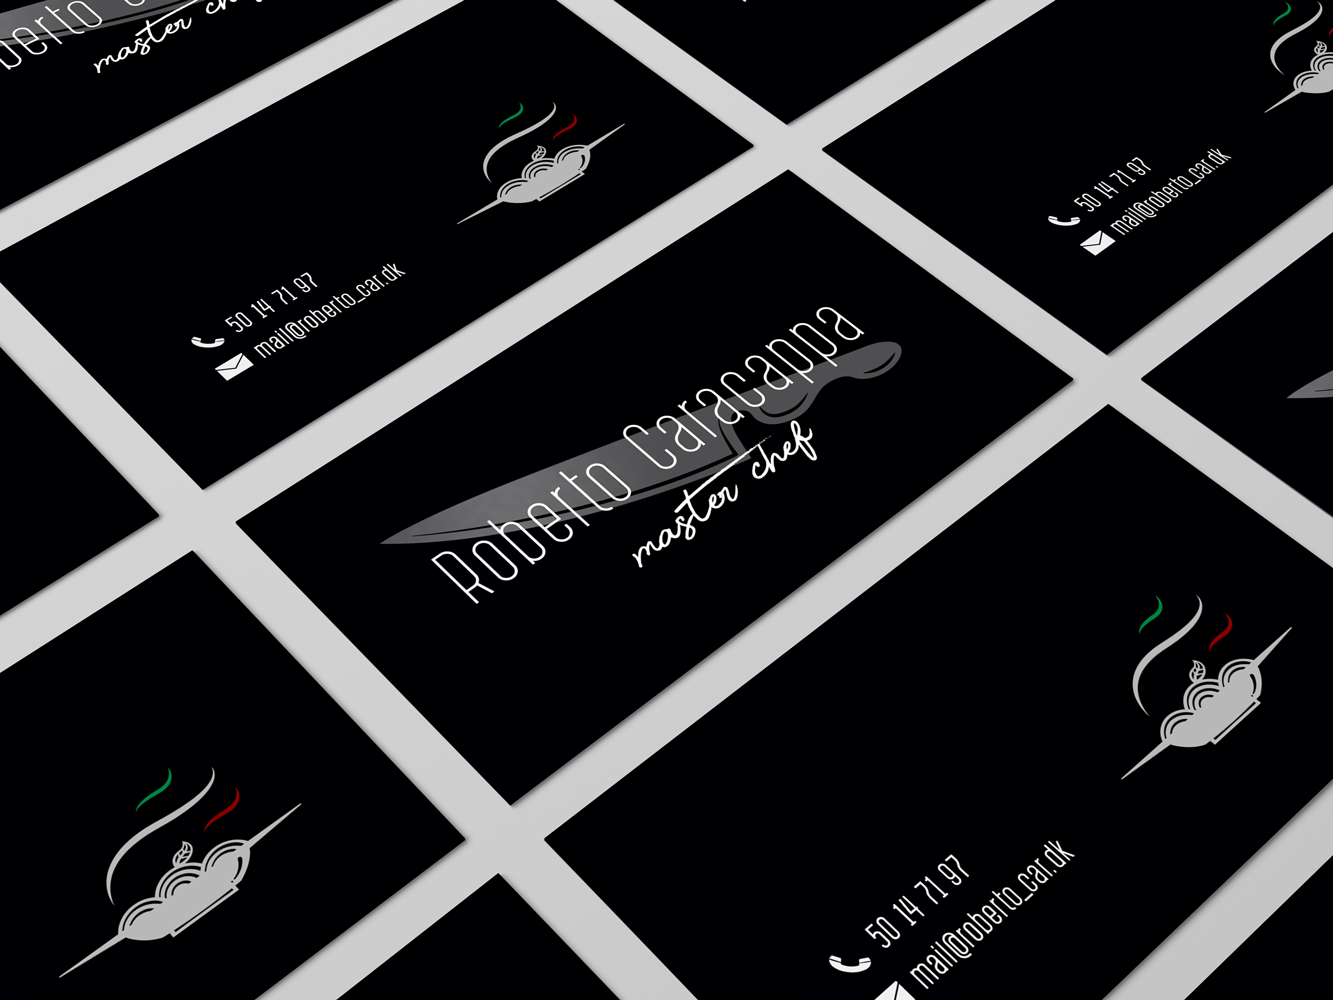 Kitchen Chef Business Card By Blagoy Nikolaev On Dribbble